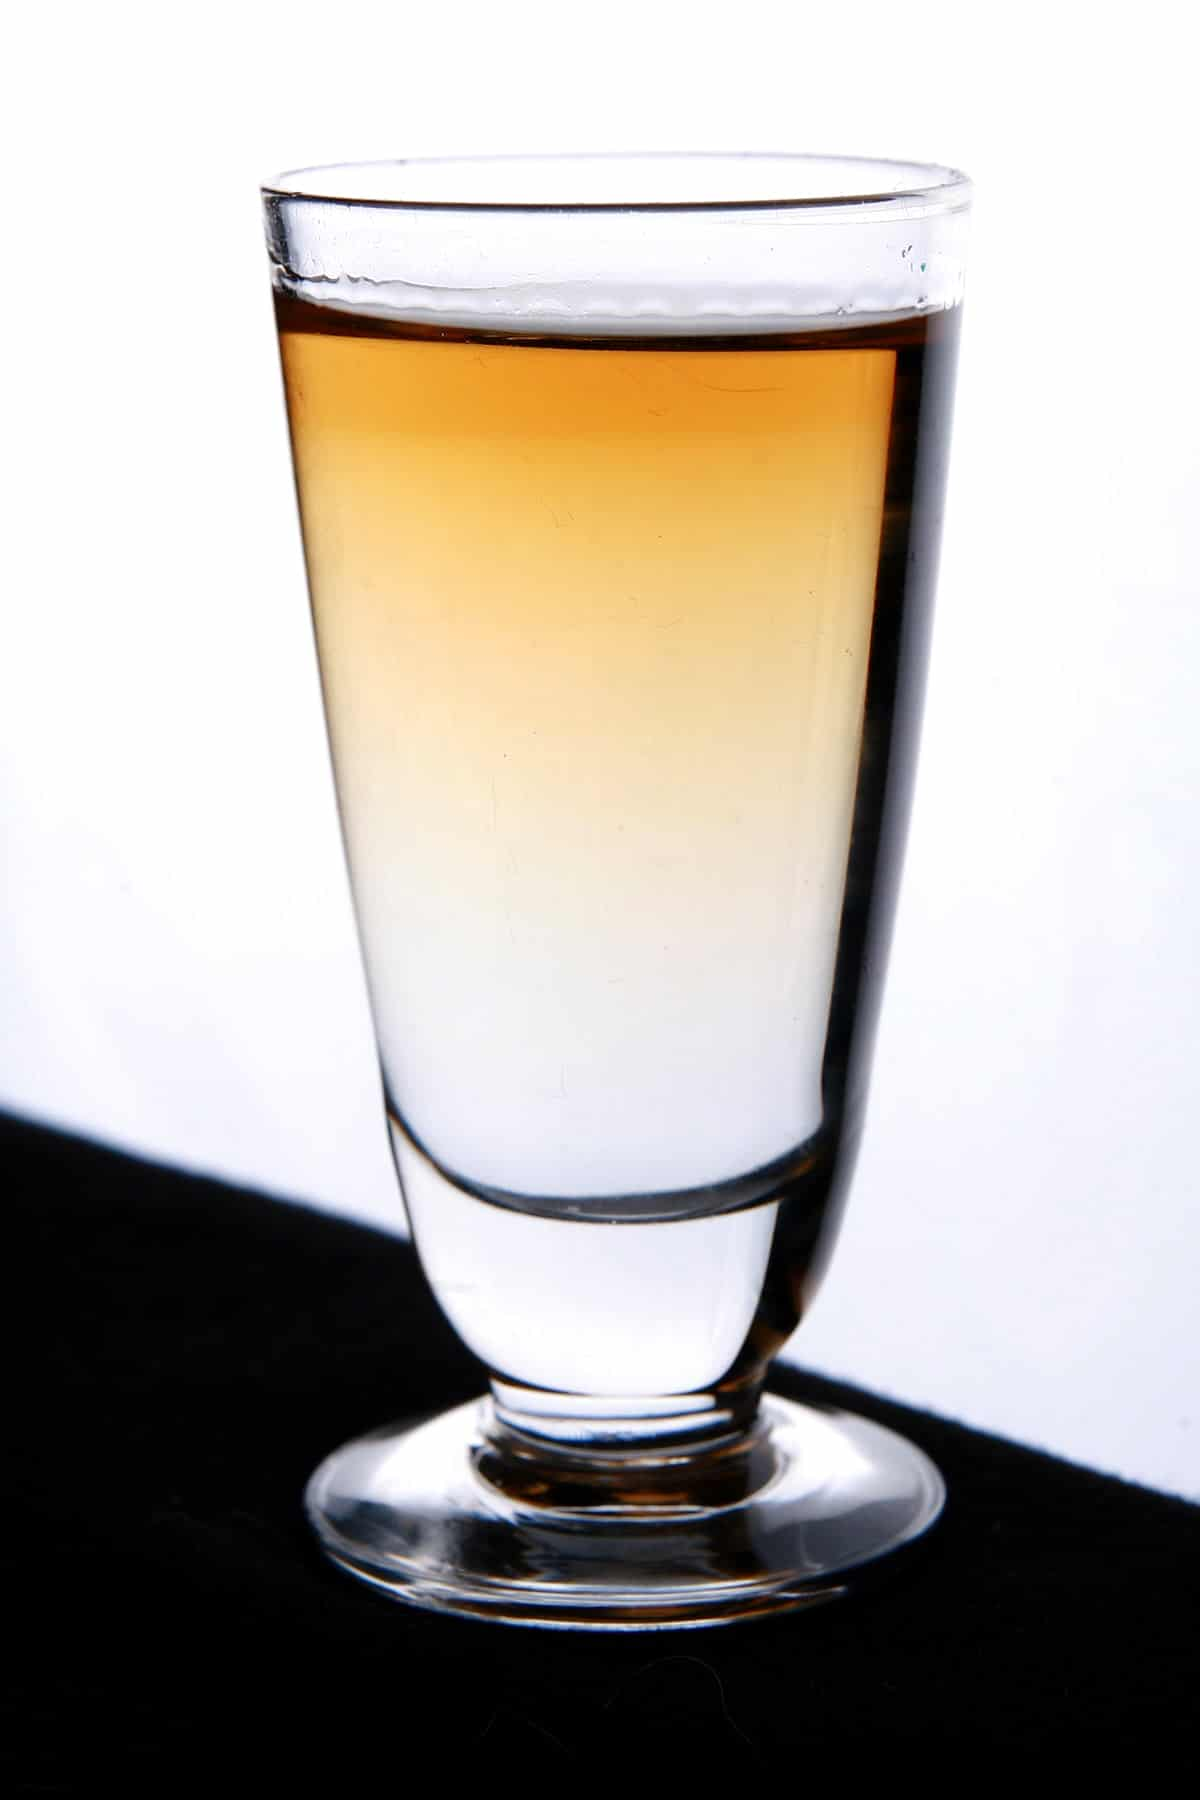 "The ""Halloween Candy"" Shot recipe. A shot glass is shown with clear liquid on the bottom. The top orange layer is seeping into the clear, creating a pretty gradient effect."